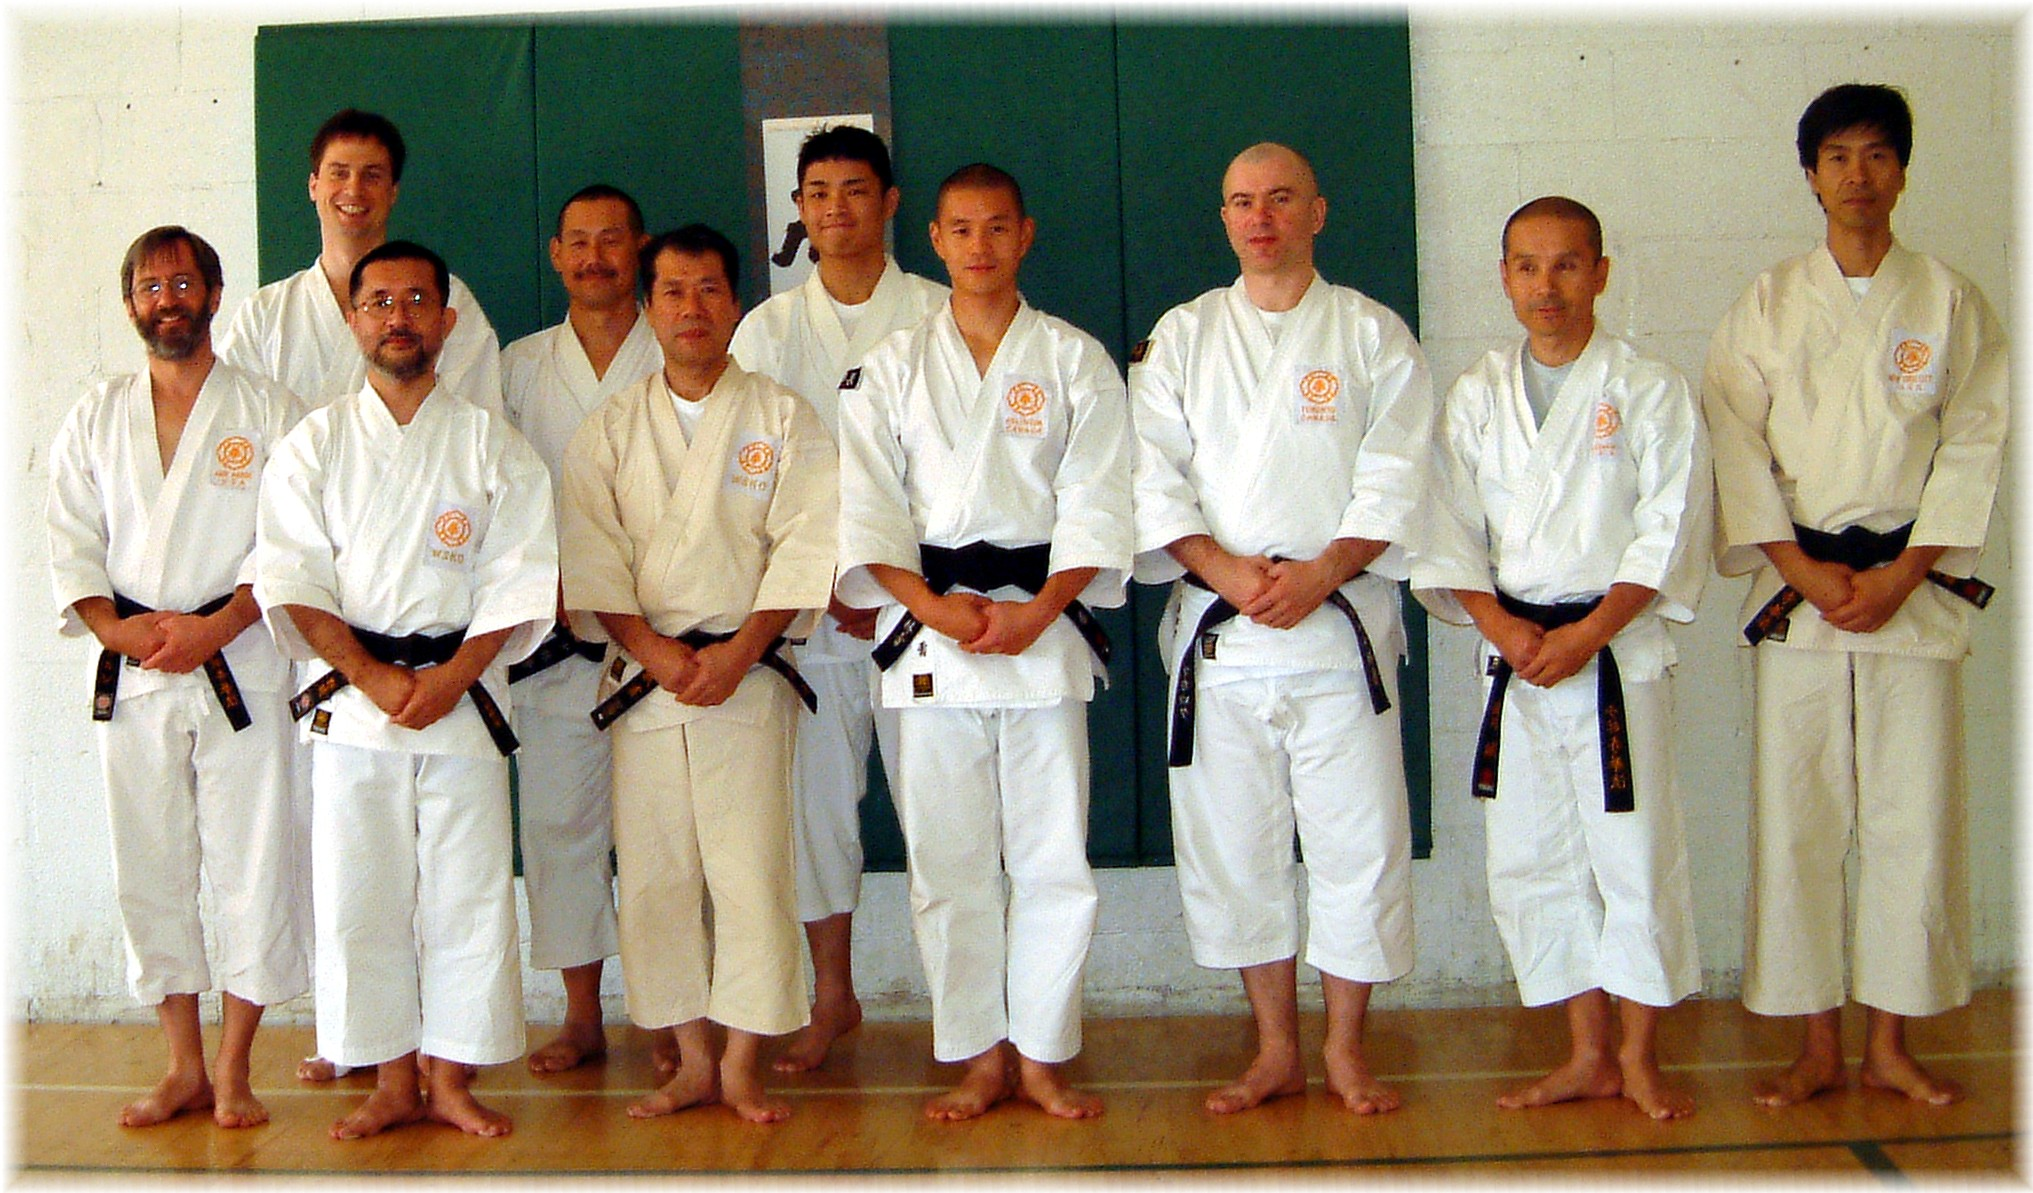 We attended the WSKO North America Eastern Region Seminar in Ann Arbor in October 2003.  Akiyoshi-sensei (8th dan) led the event.